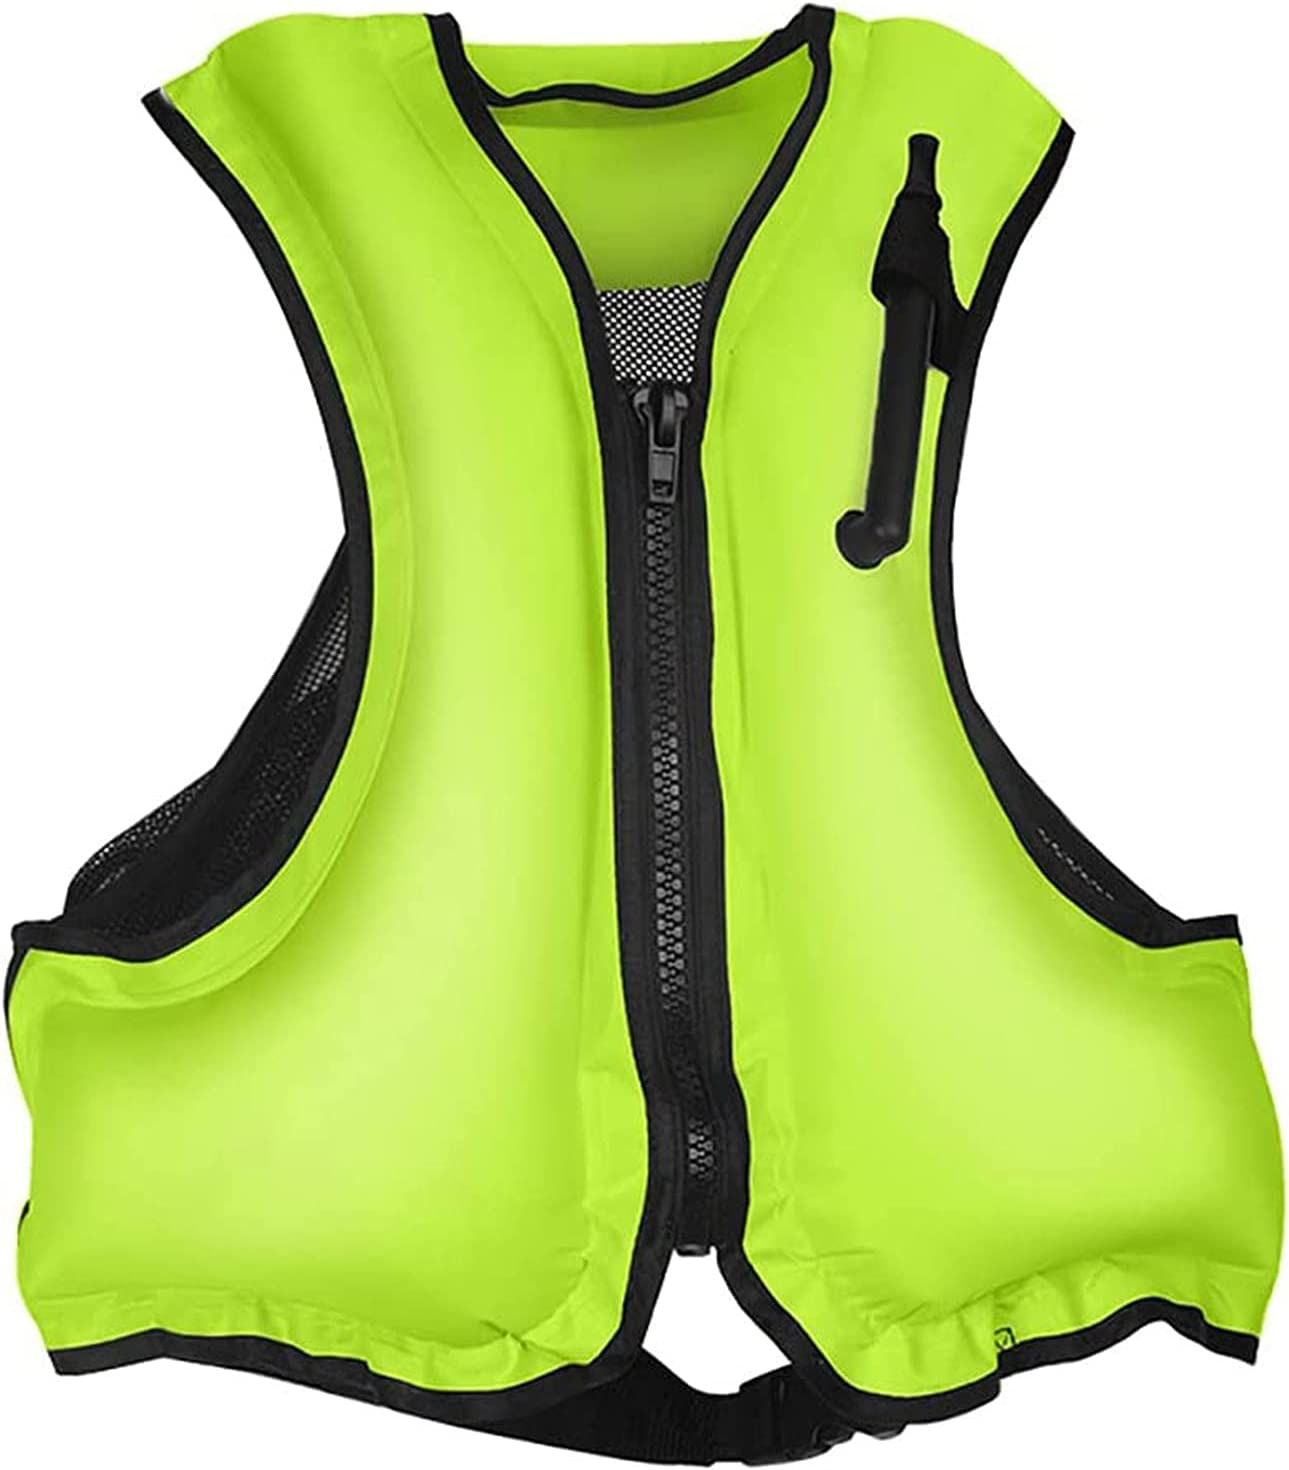 Unisex Buoyancy Vest Adult Water New life Jacket Complete Free Shipping Sports Portab Swimming